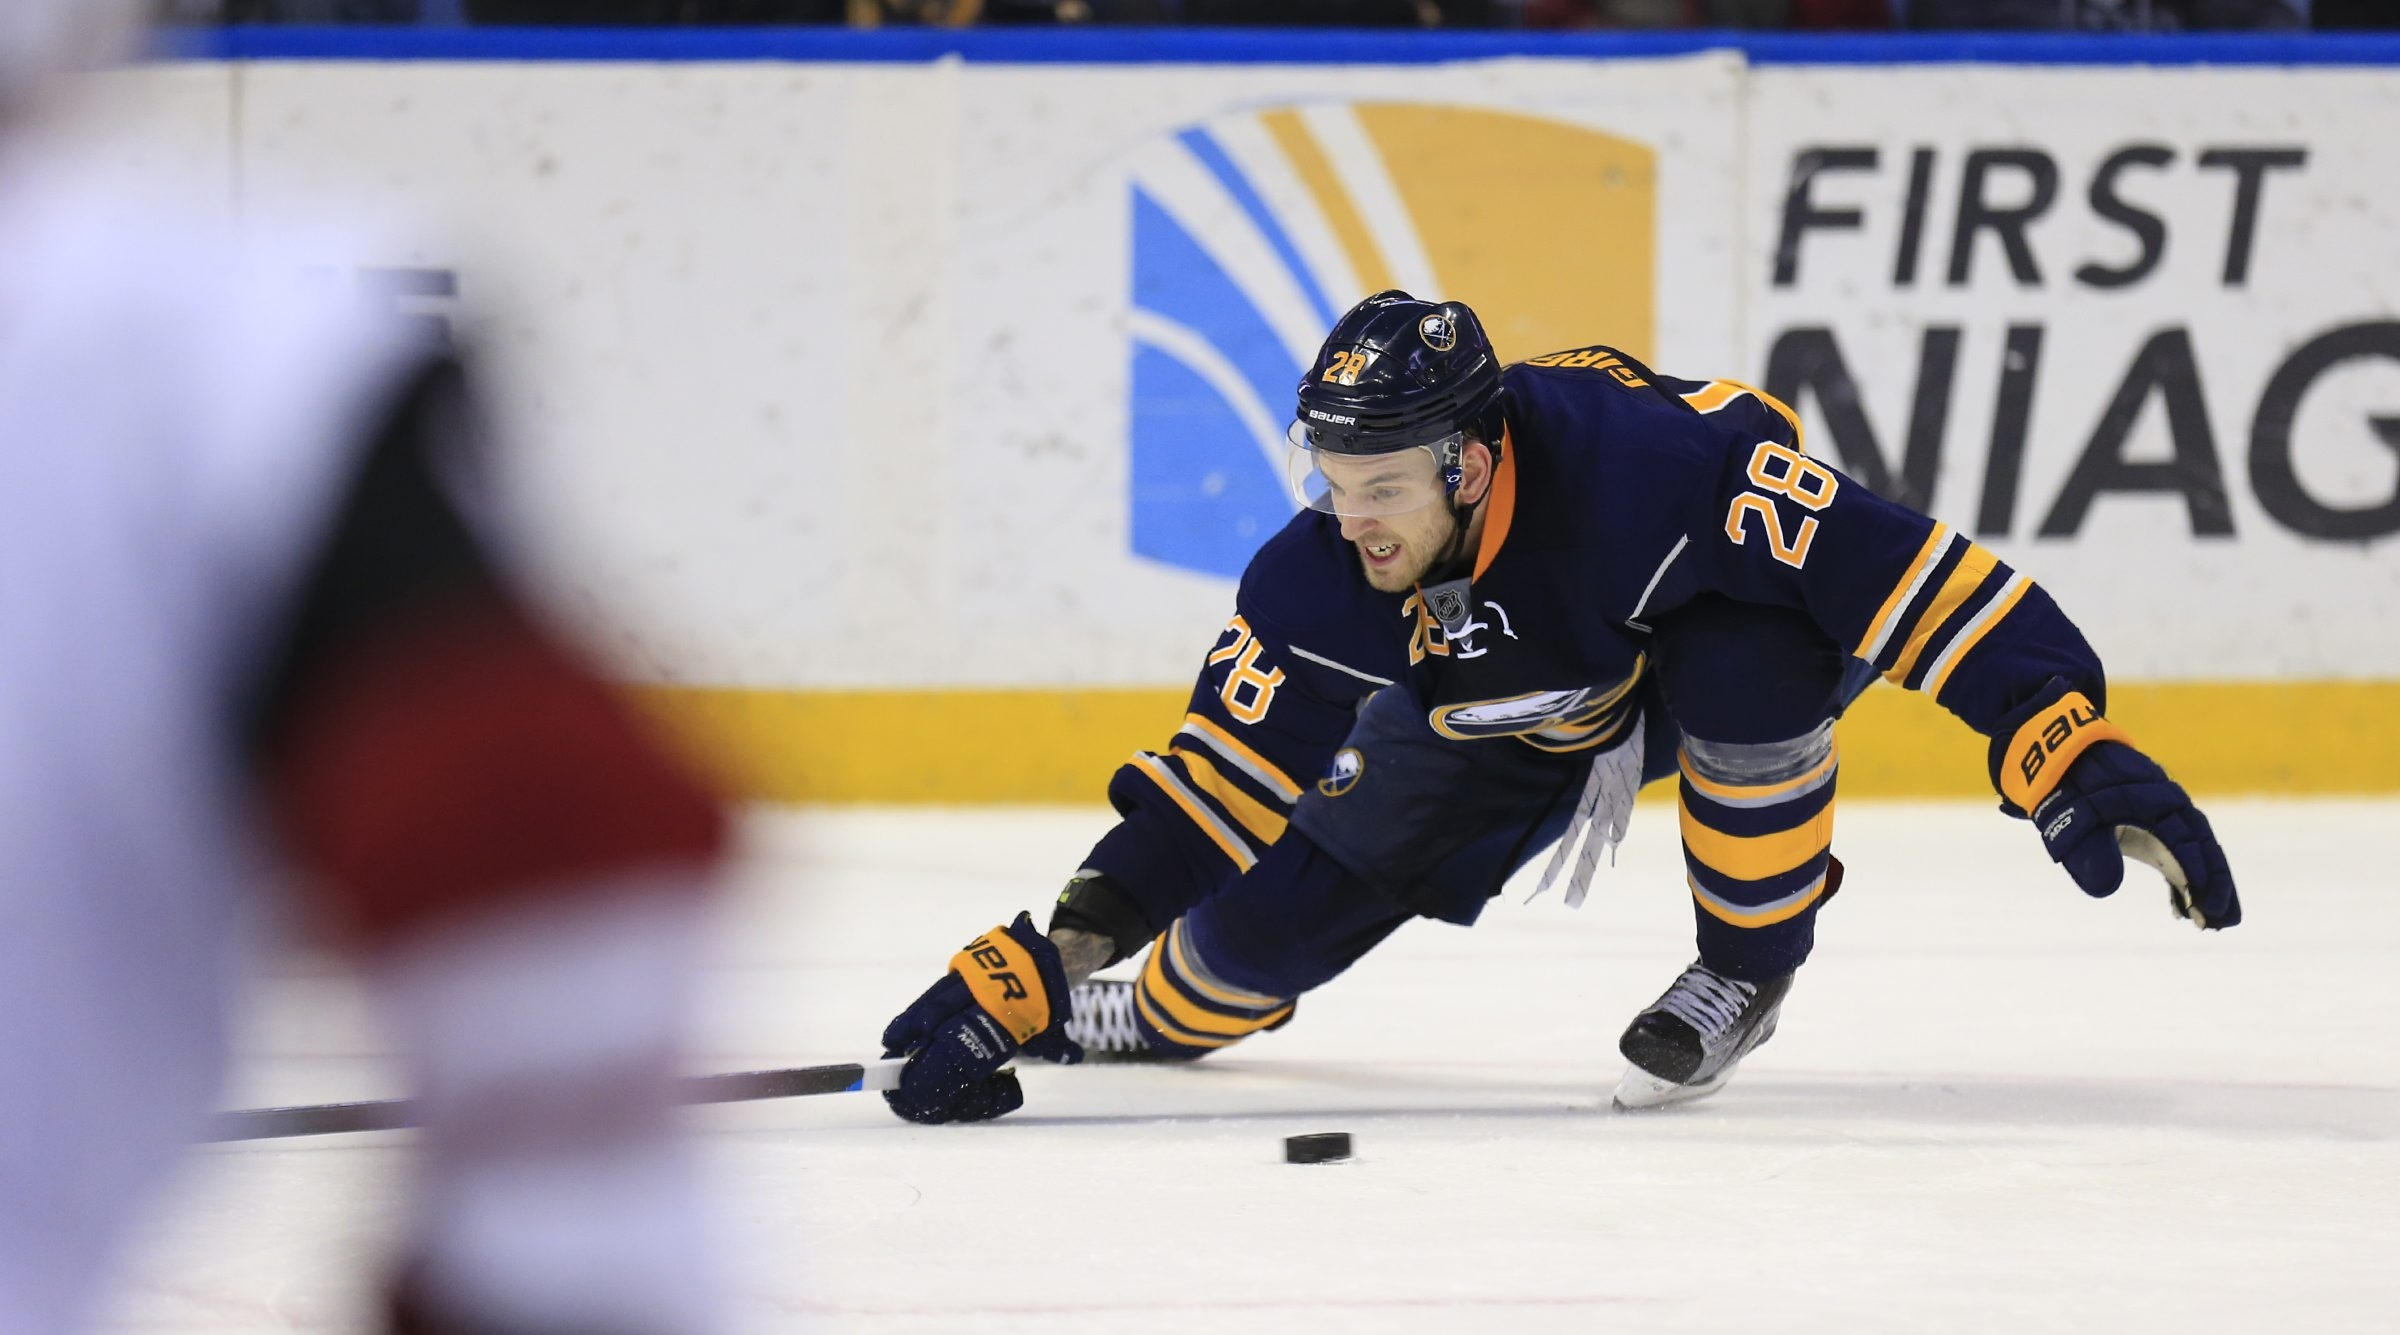 Zemgus Girgensons has recorded three points in last three games doubling season output.